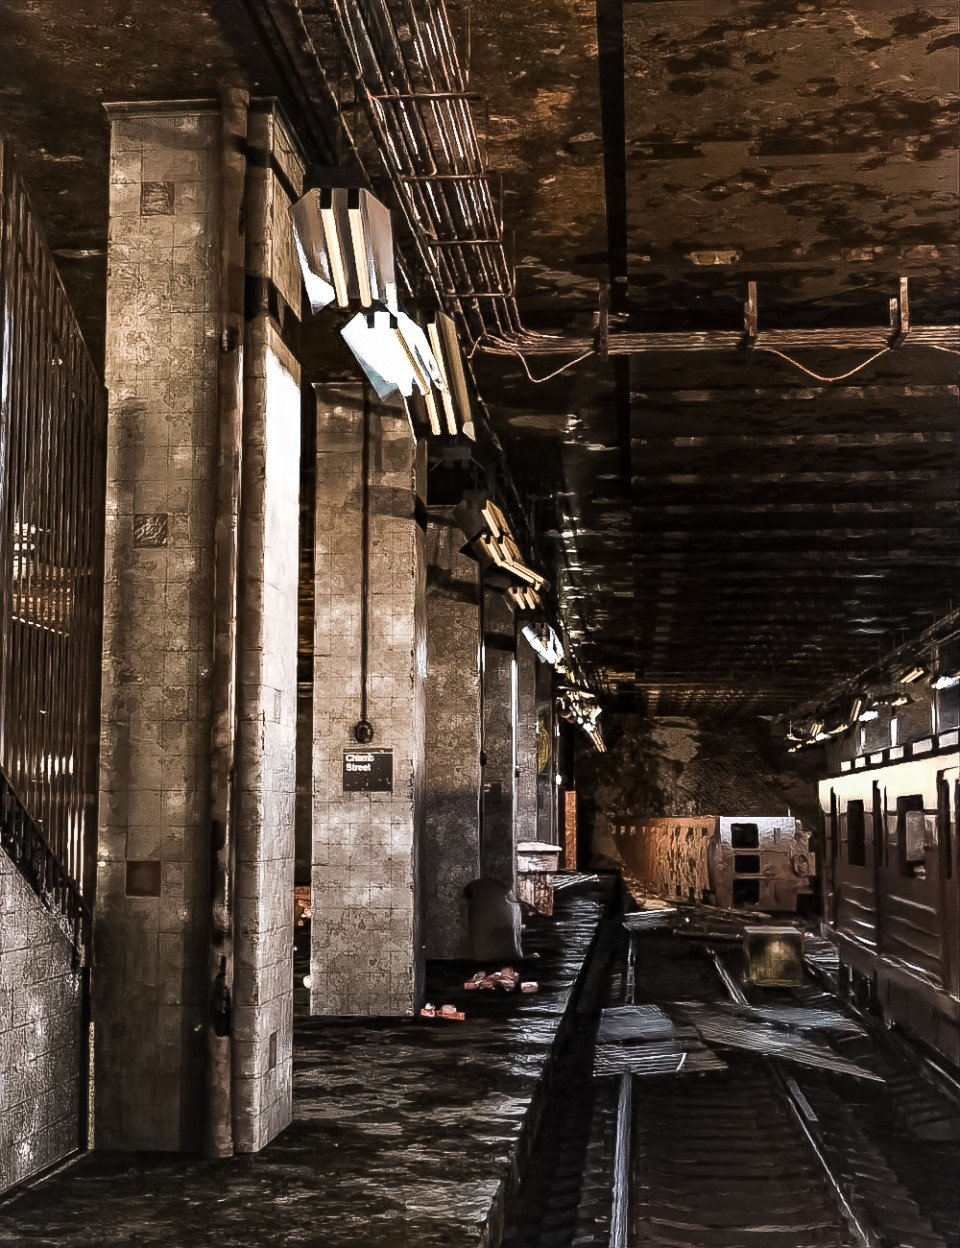 Abandoned Subway Station_DAZ3D下载站